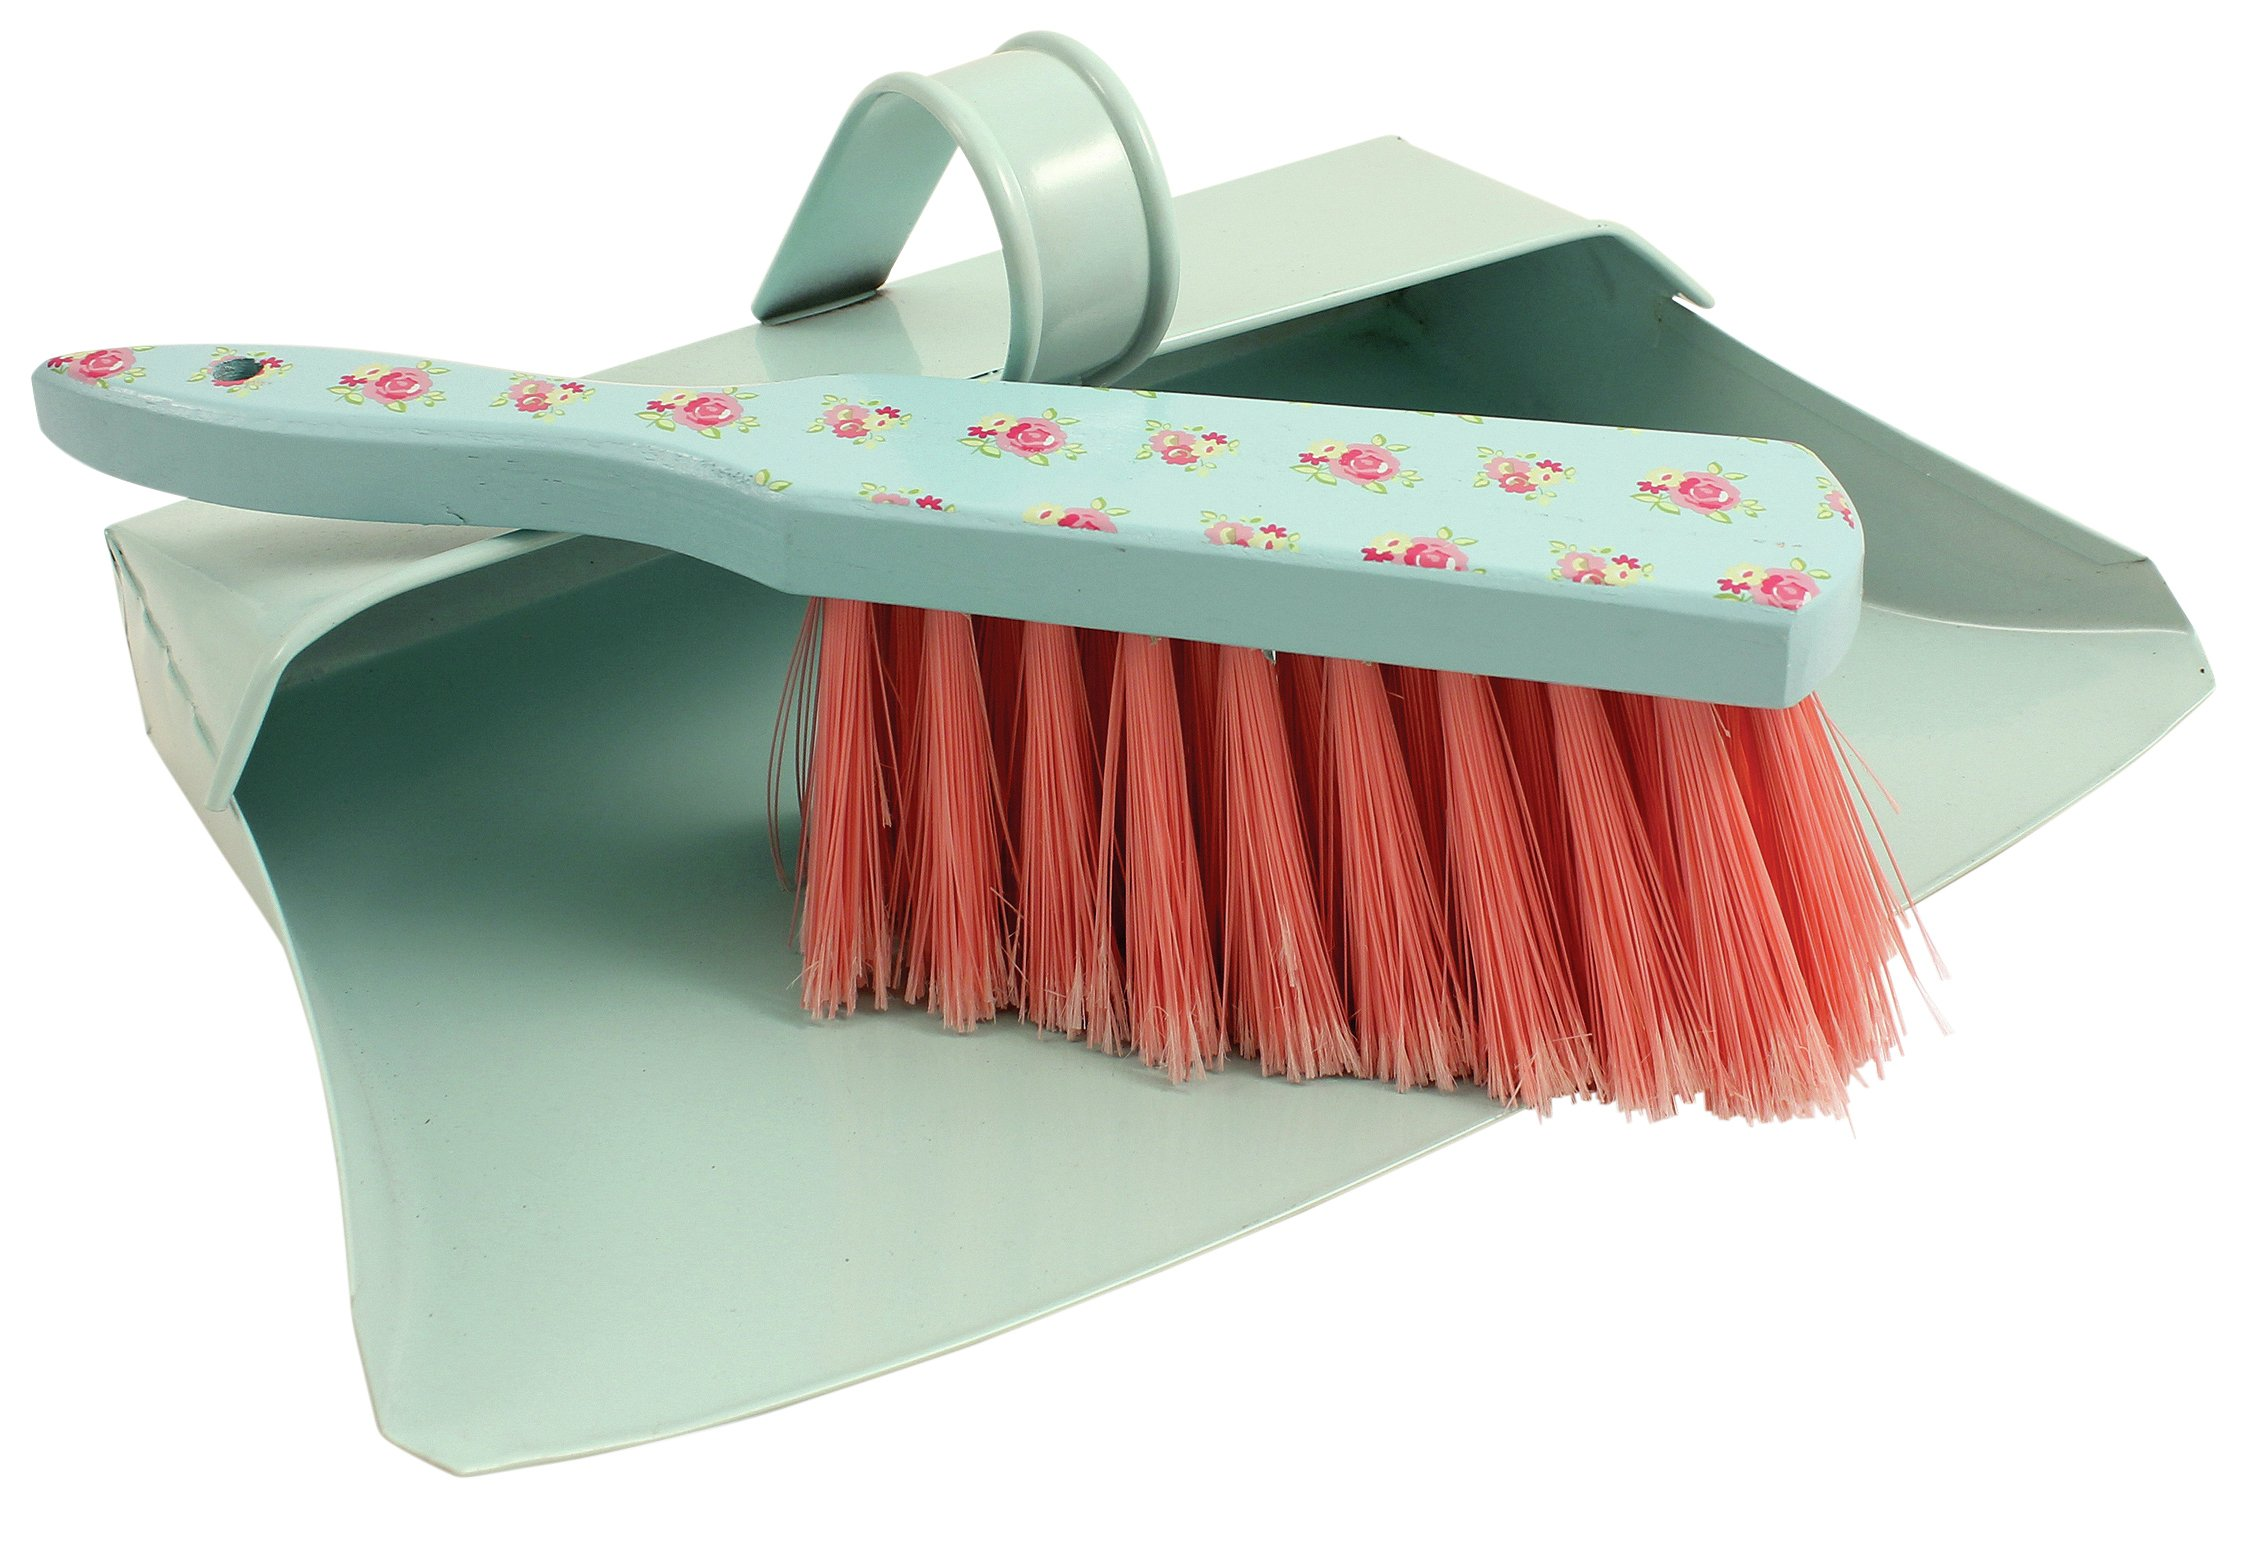 Image of Bentley Gypsy Rose Set of 2 Heavy Duty Dustpan and Brush Set